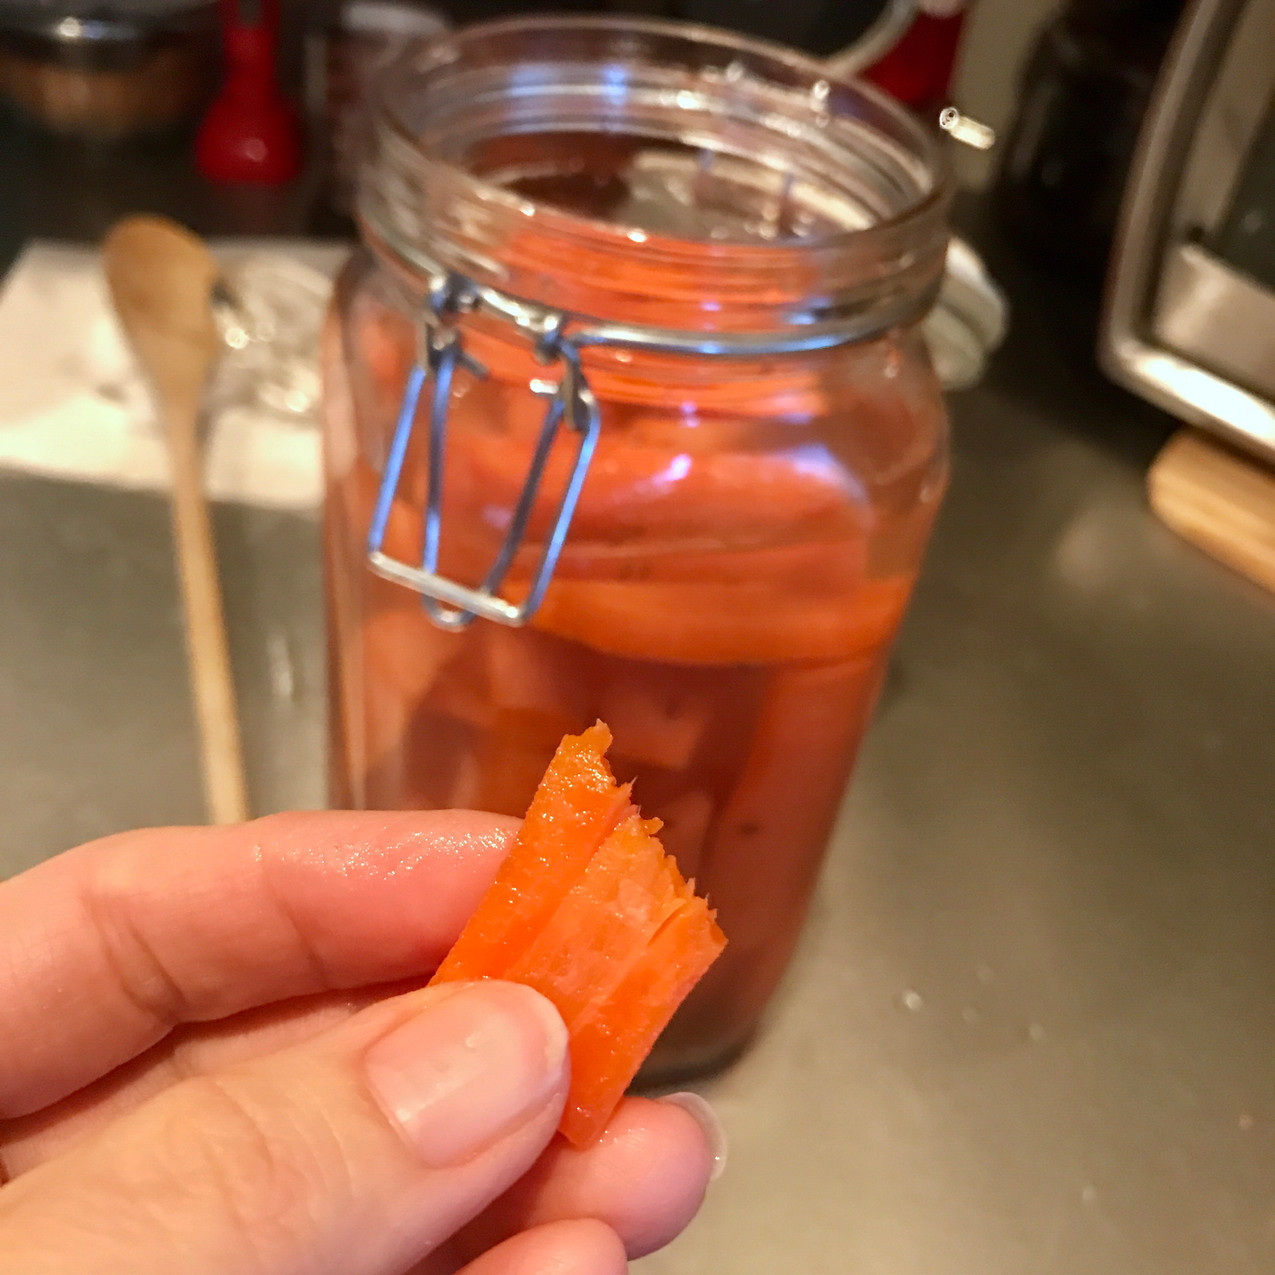 Crisp and delicious lacto-fermented carrot sticks